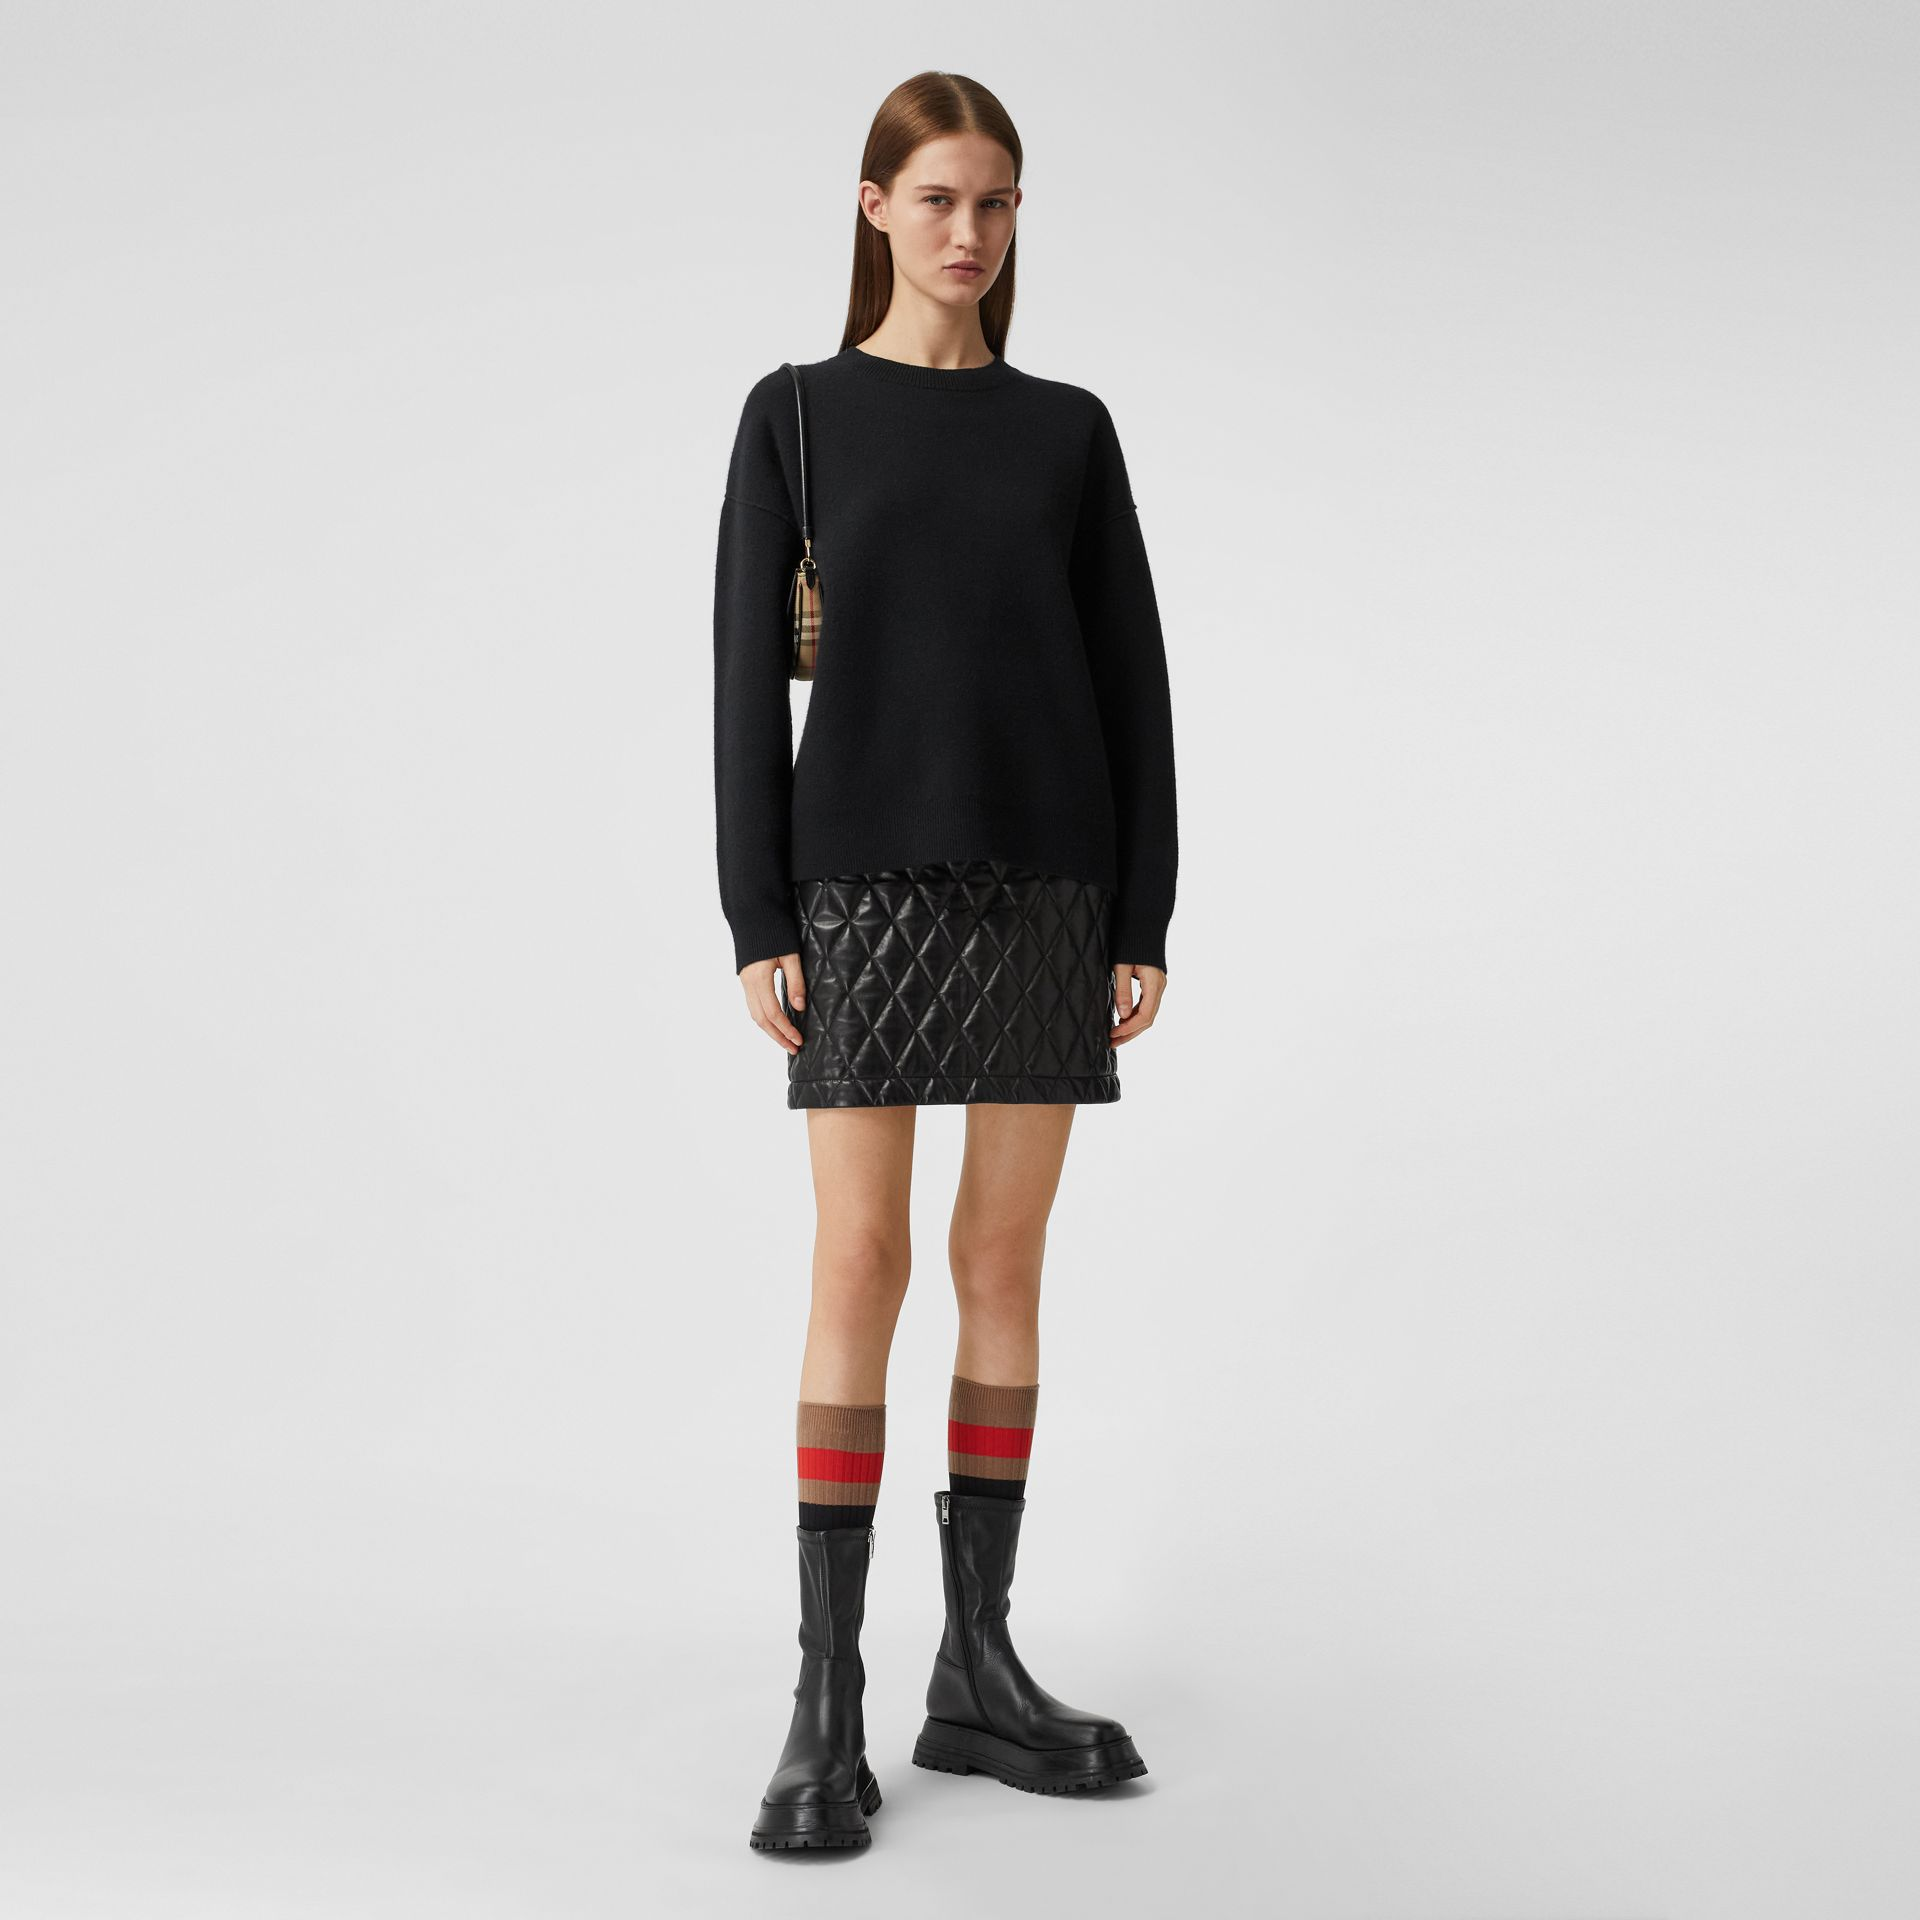 Monogram Motif Cashmere Blend Sweater in Black - Women | Burberry - gallery image 0